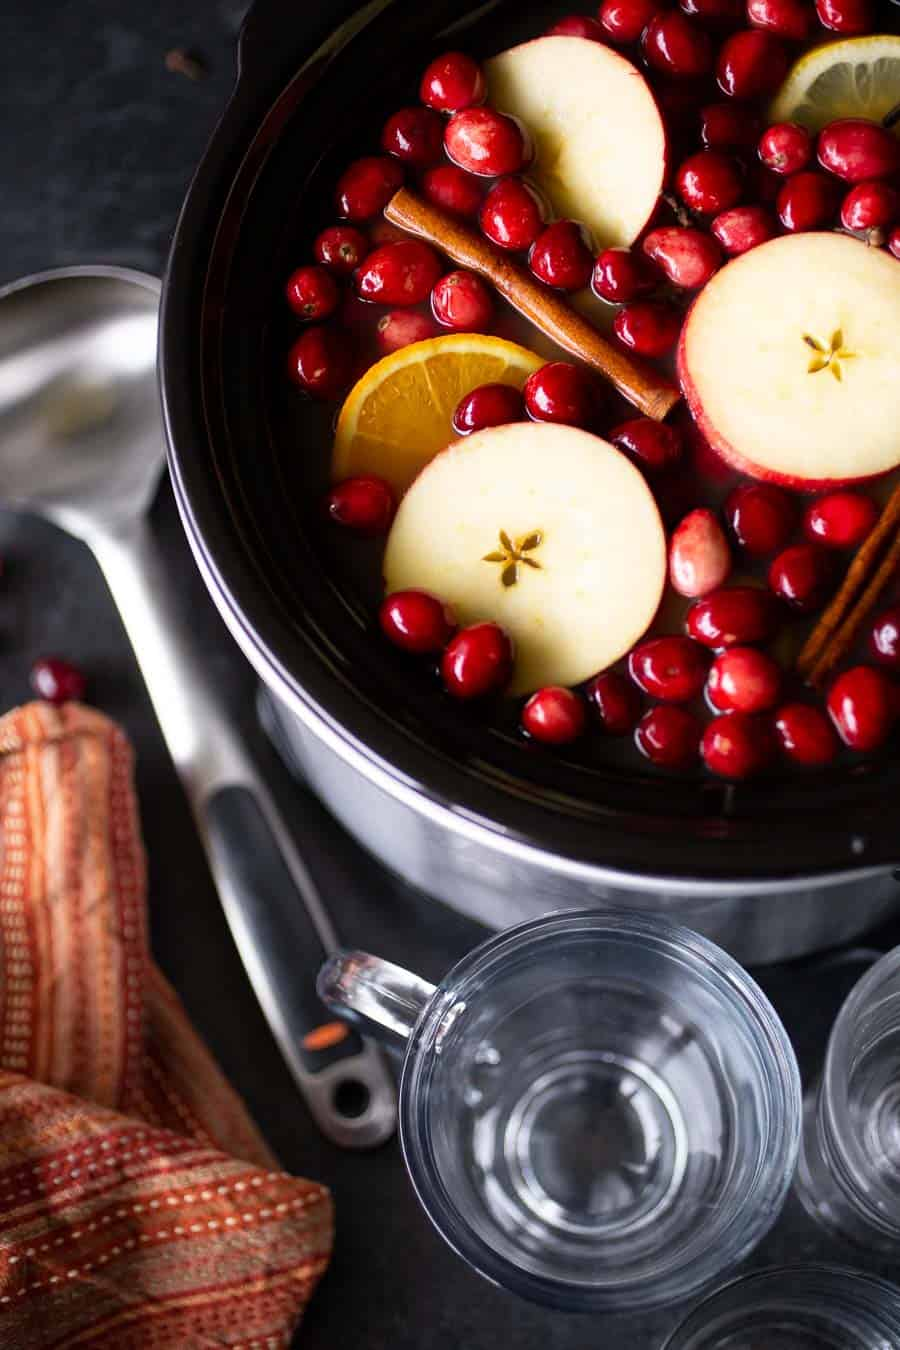 Using a slow cooker for this classic cold-weather mulled cider recipe allows you to prep, pre-make, and then be fully present with your family and friends. The slow cooker keeps the hot apple cider warm (and mulling) in the background while you get to sit back and enjoy some downtime with the people you love. #mulledcider #applecider #fallrecipes #thanksgivingrecipes #christmasdrinks #crockpotrecipes #slowcooker #slowcookerrecipes #recipes #drinkrecipes #easypeasydrinks #cider #mulledcider #applecider *My family LOVES this cider